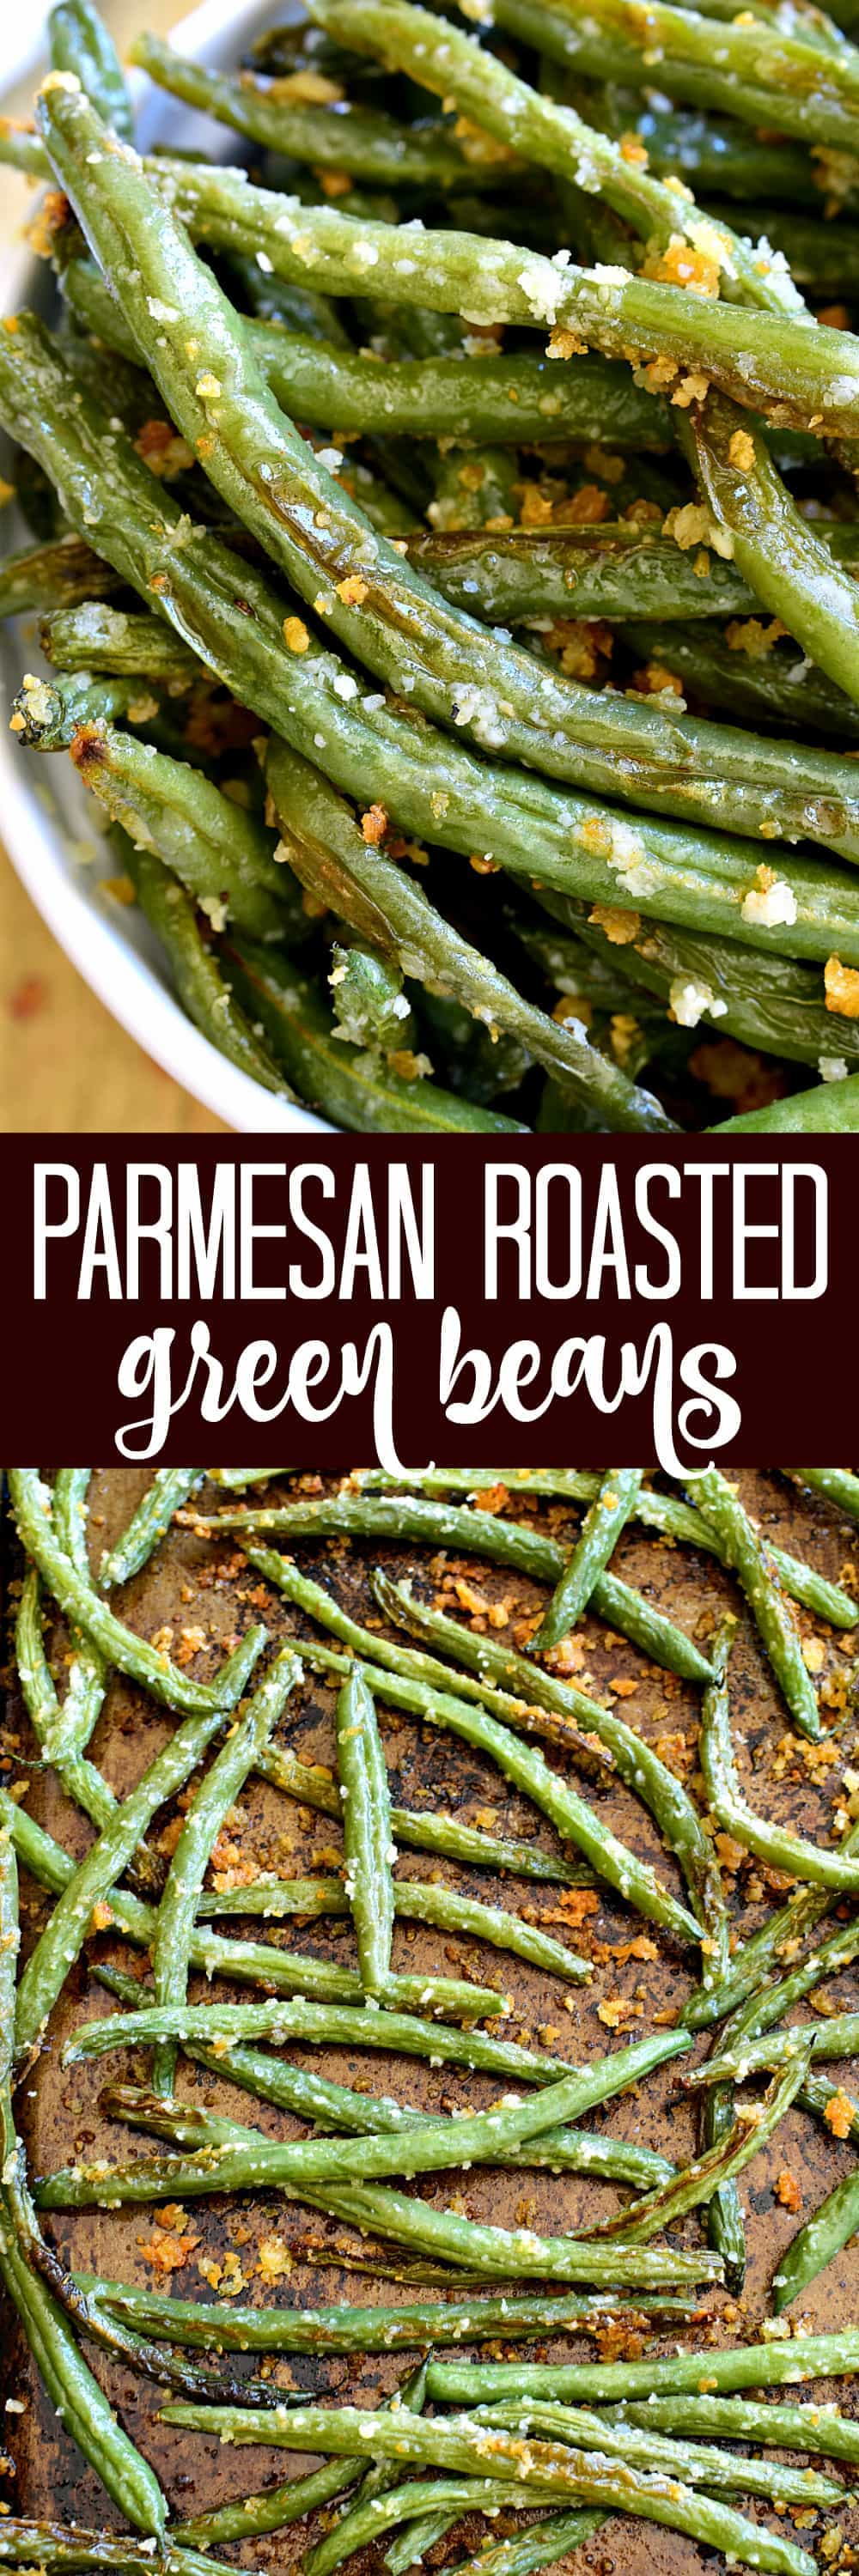 Collage image of Parmesan Roasted Green Beans